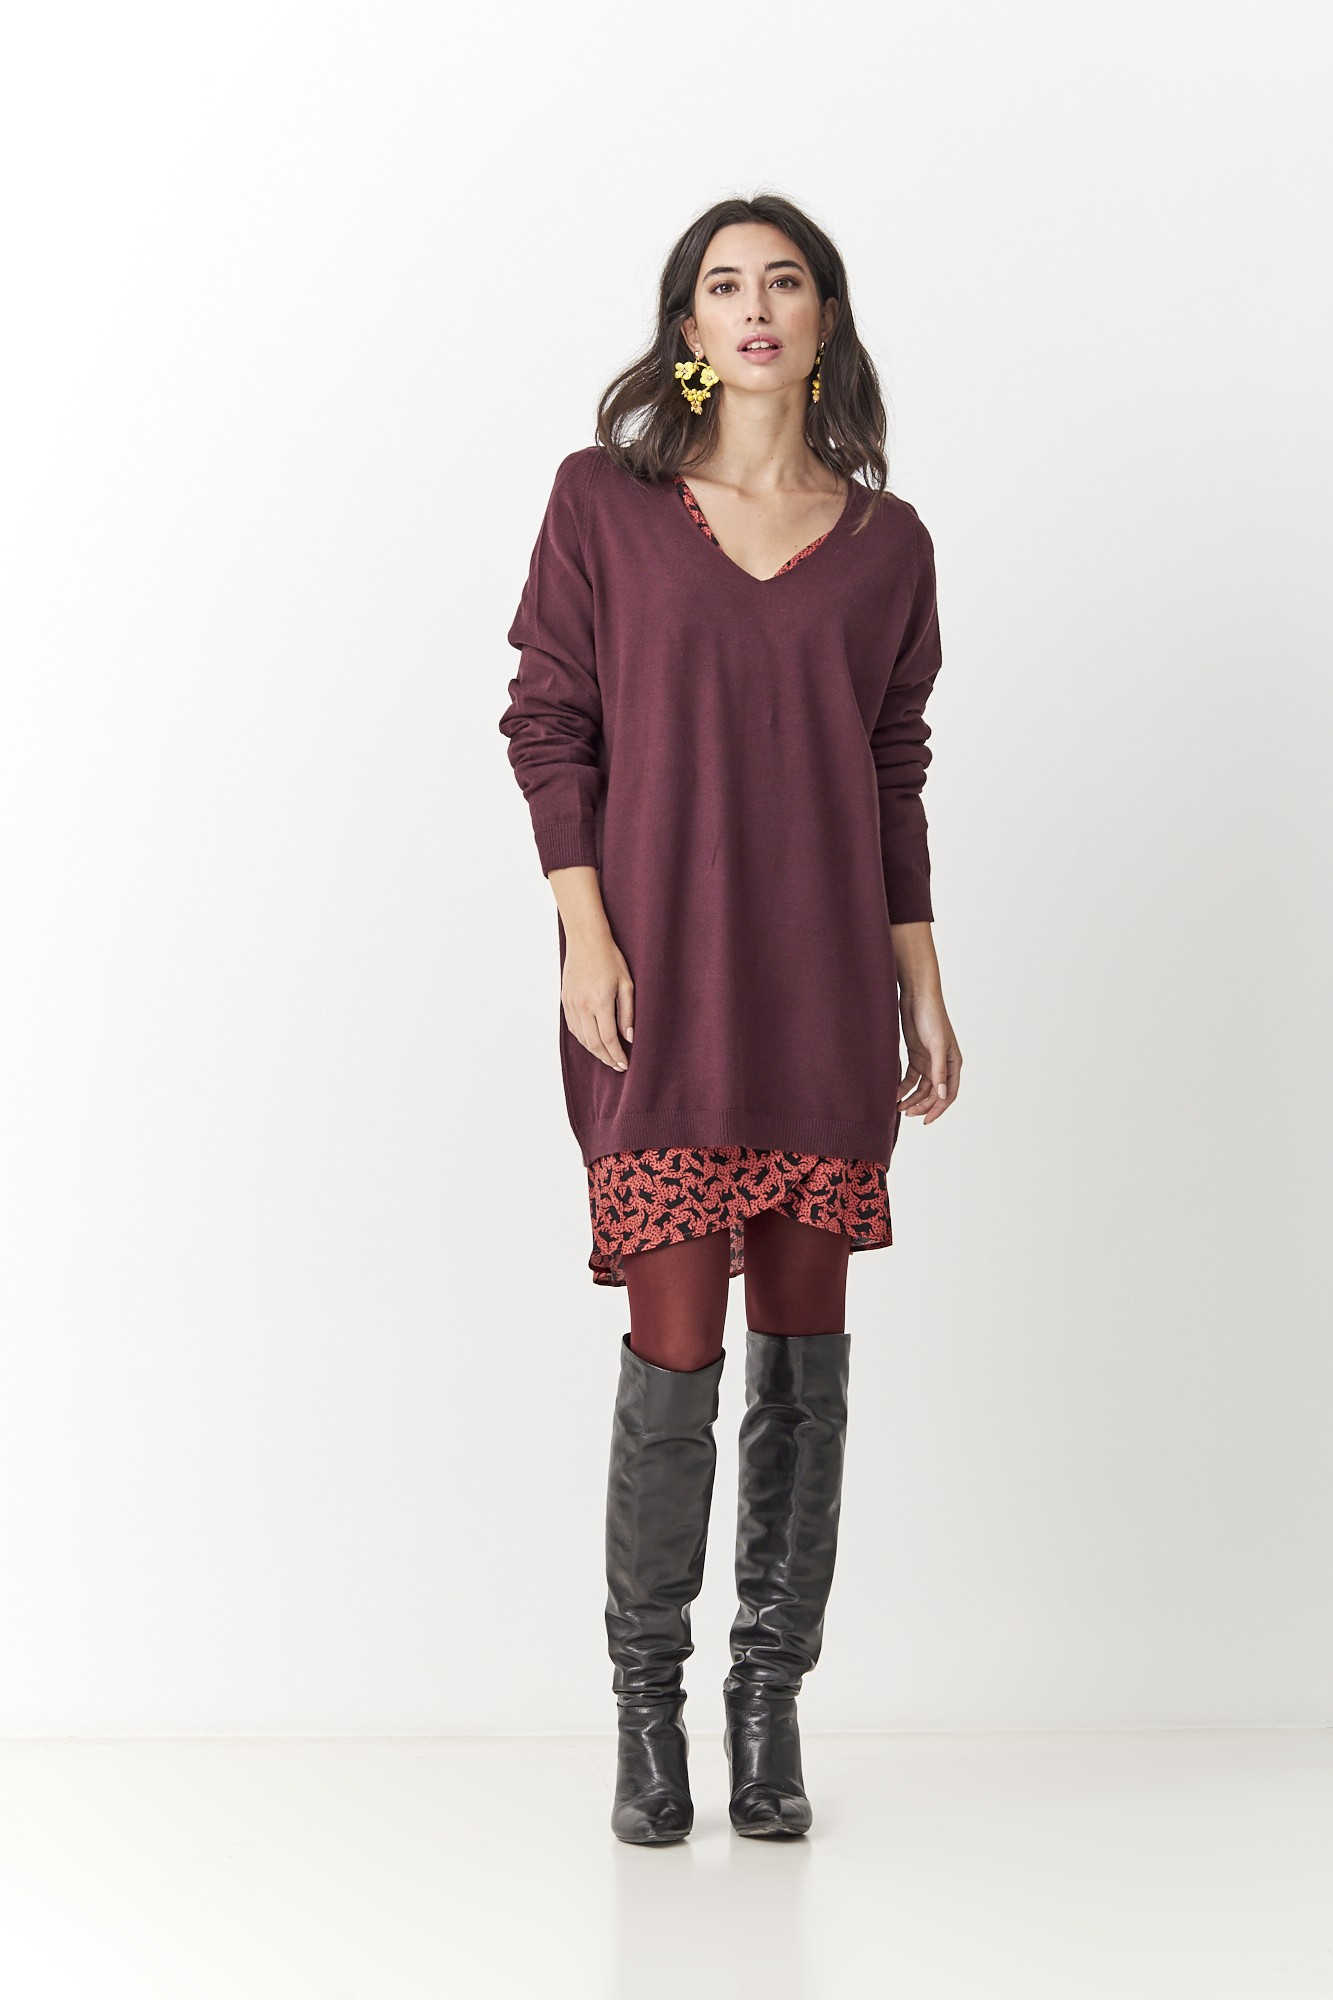 SISTER APOLO BURGUNDY JUMPER